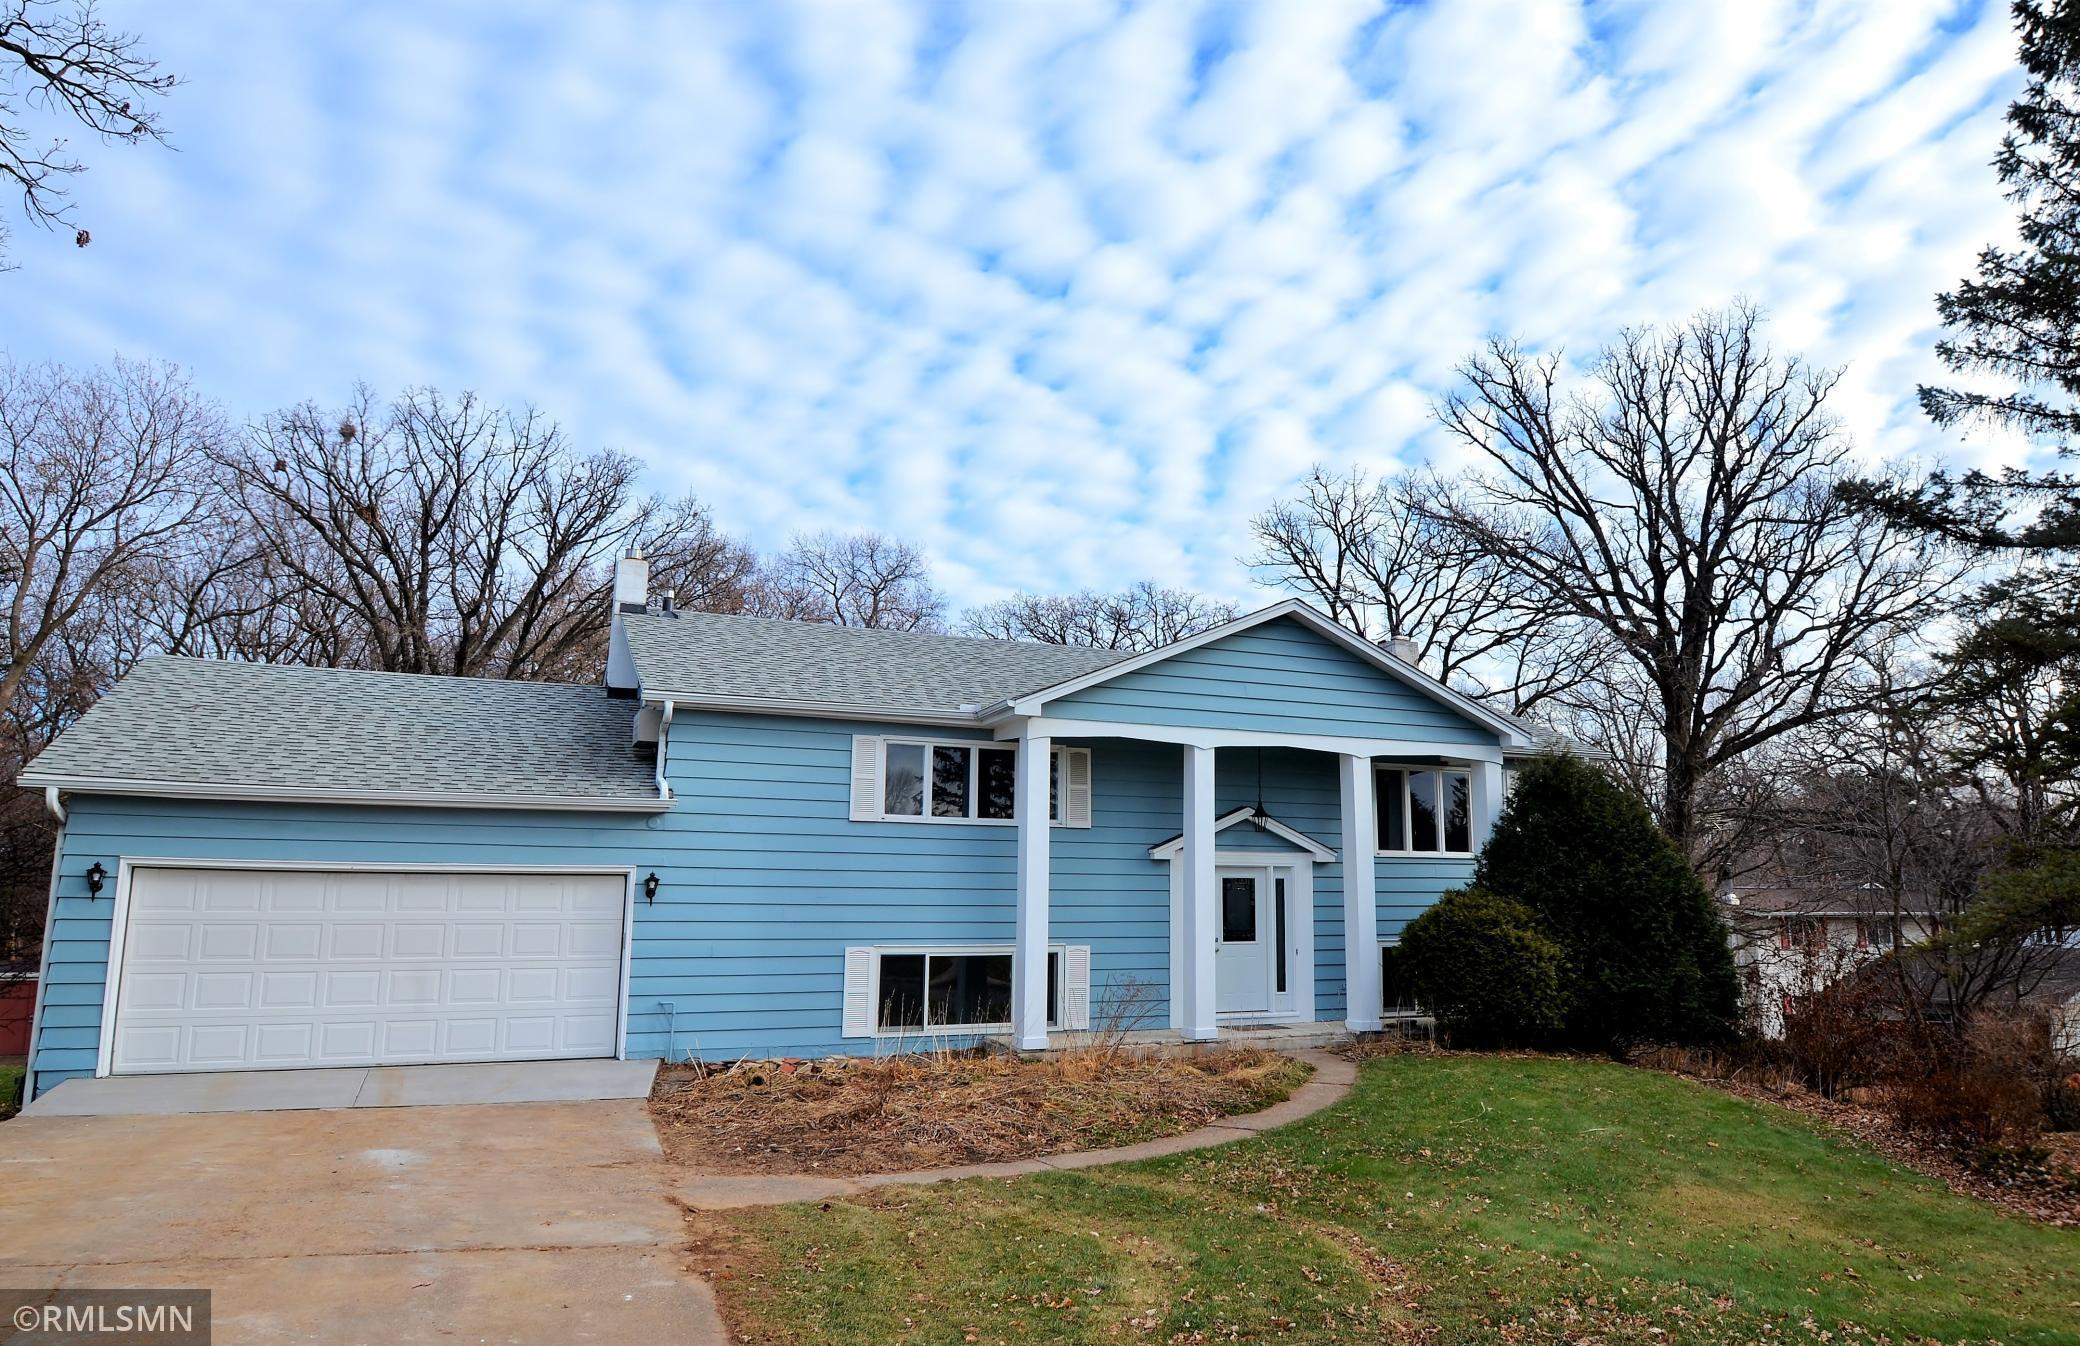 860 Bartelmy Lane N Property Photo - Maplewood, MN real estate listing